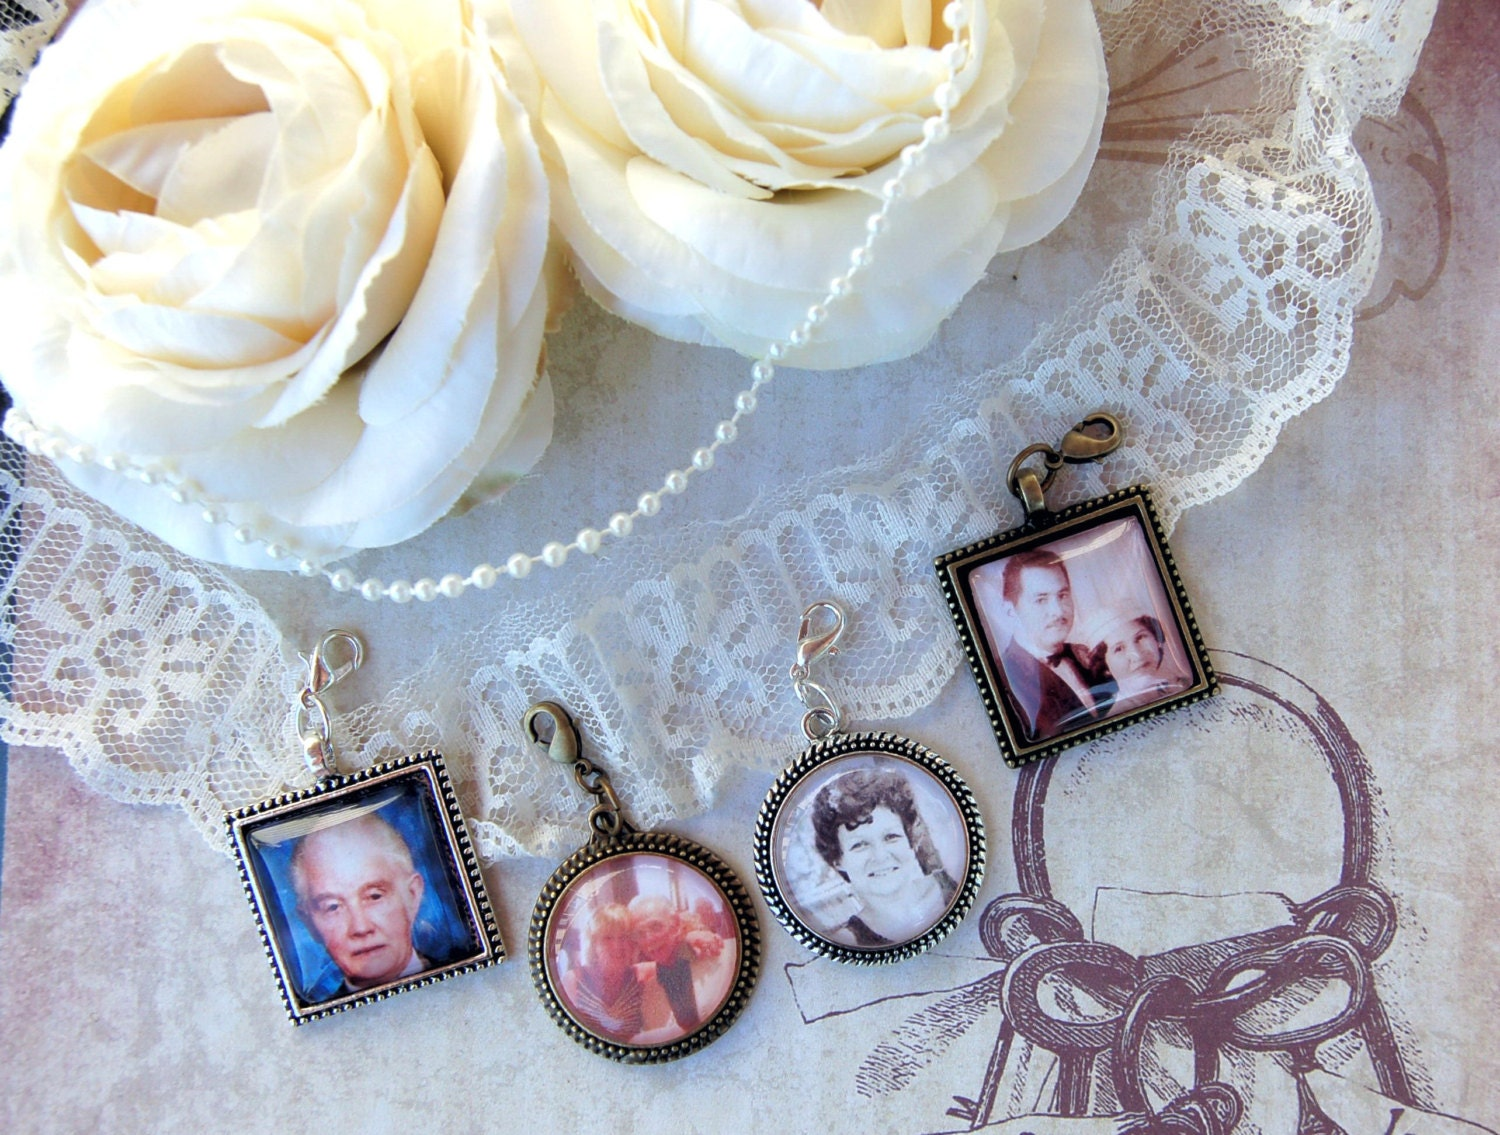 wedding photo charm bridal bouquet photo charm boutonni re